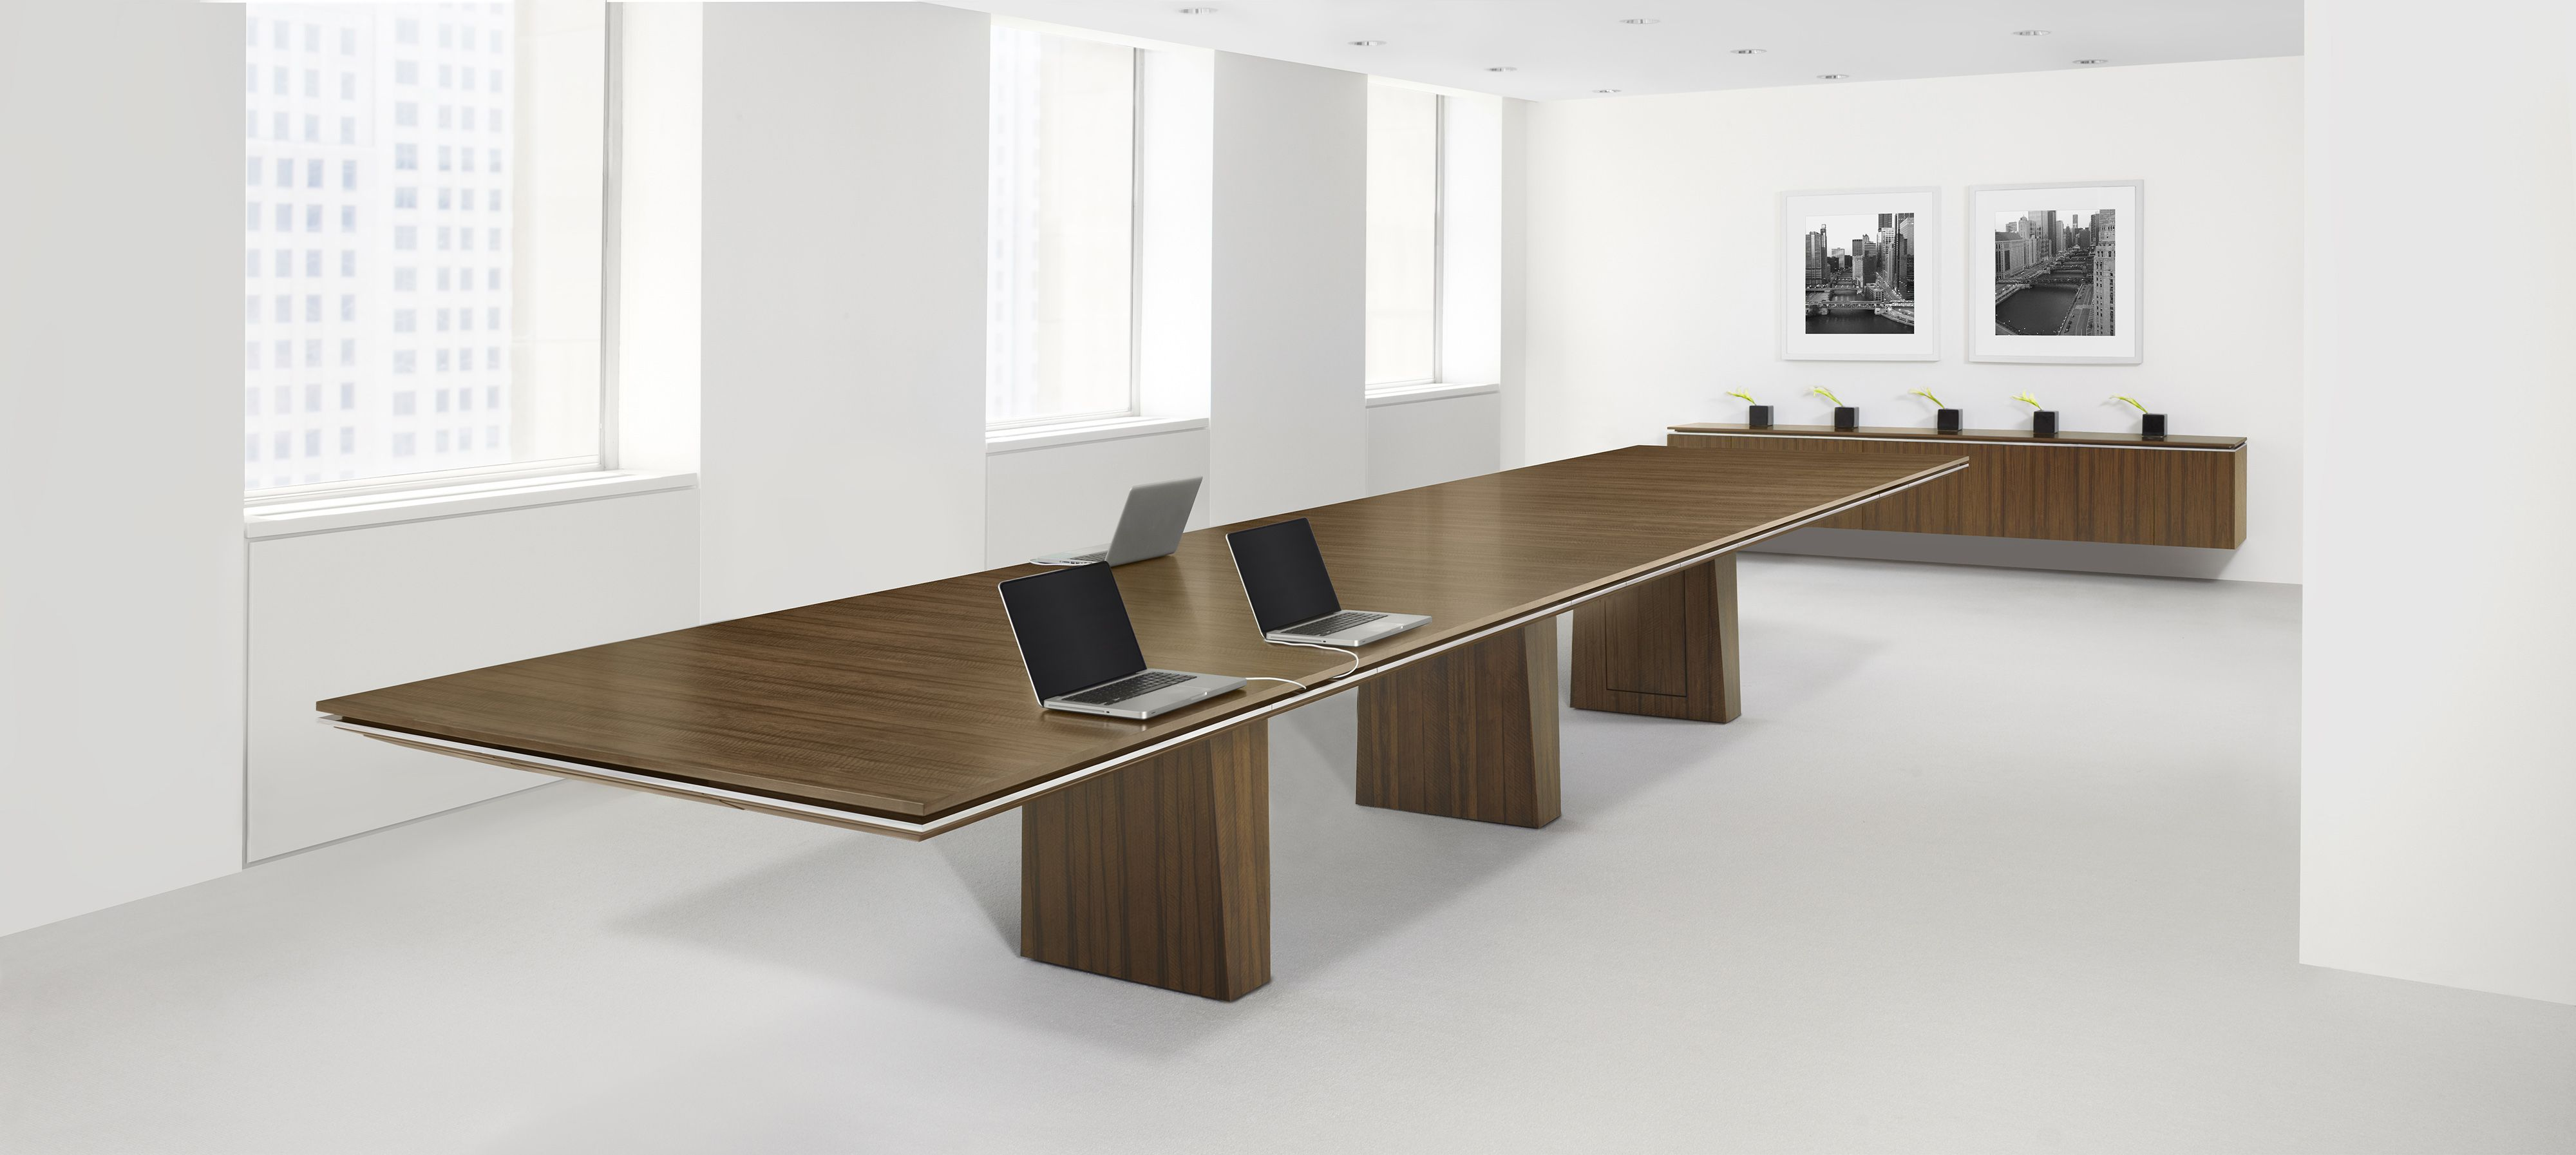 Mesa by HALCON  Boardroom table design, Boardroom table